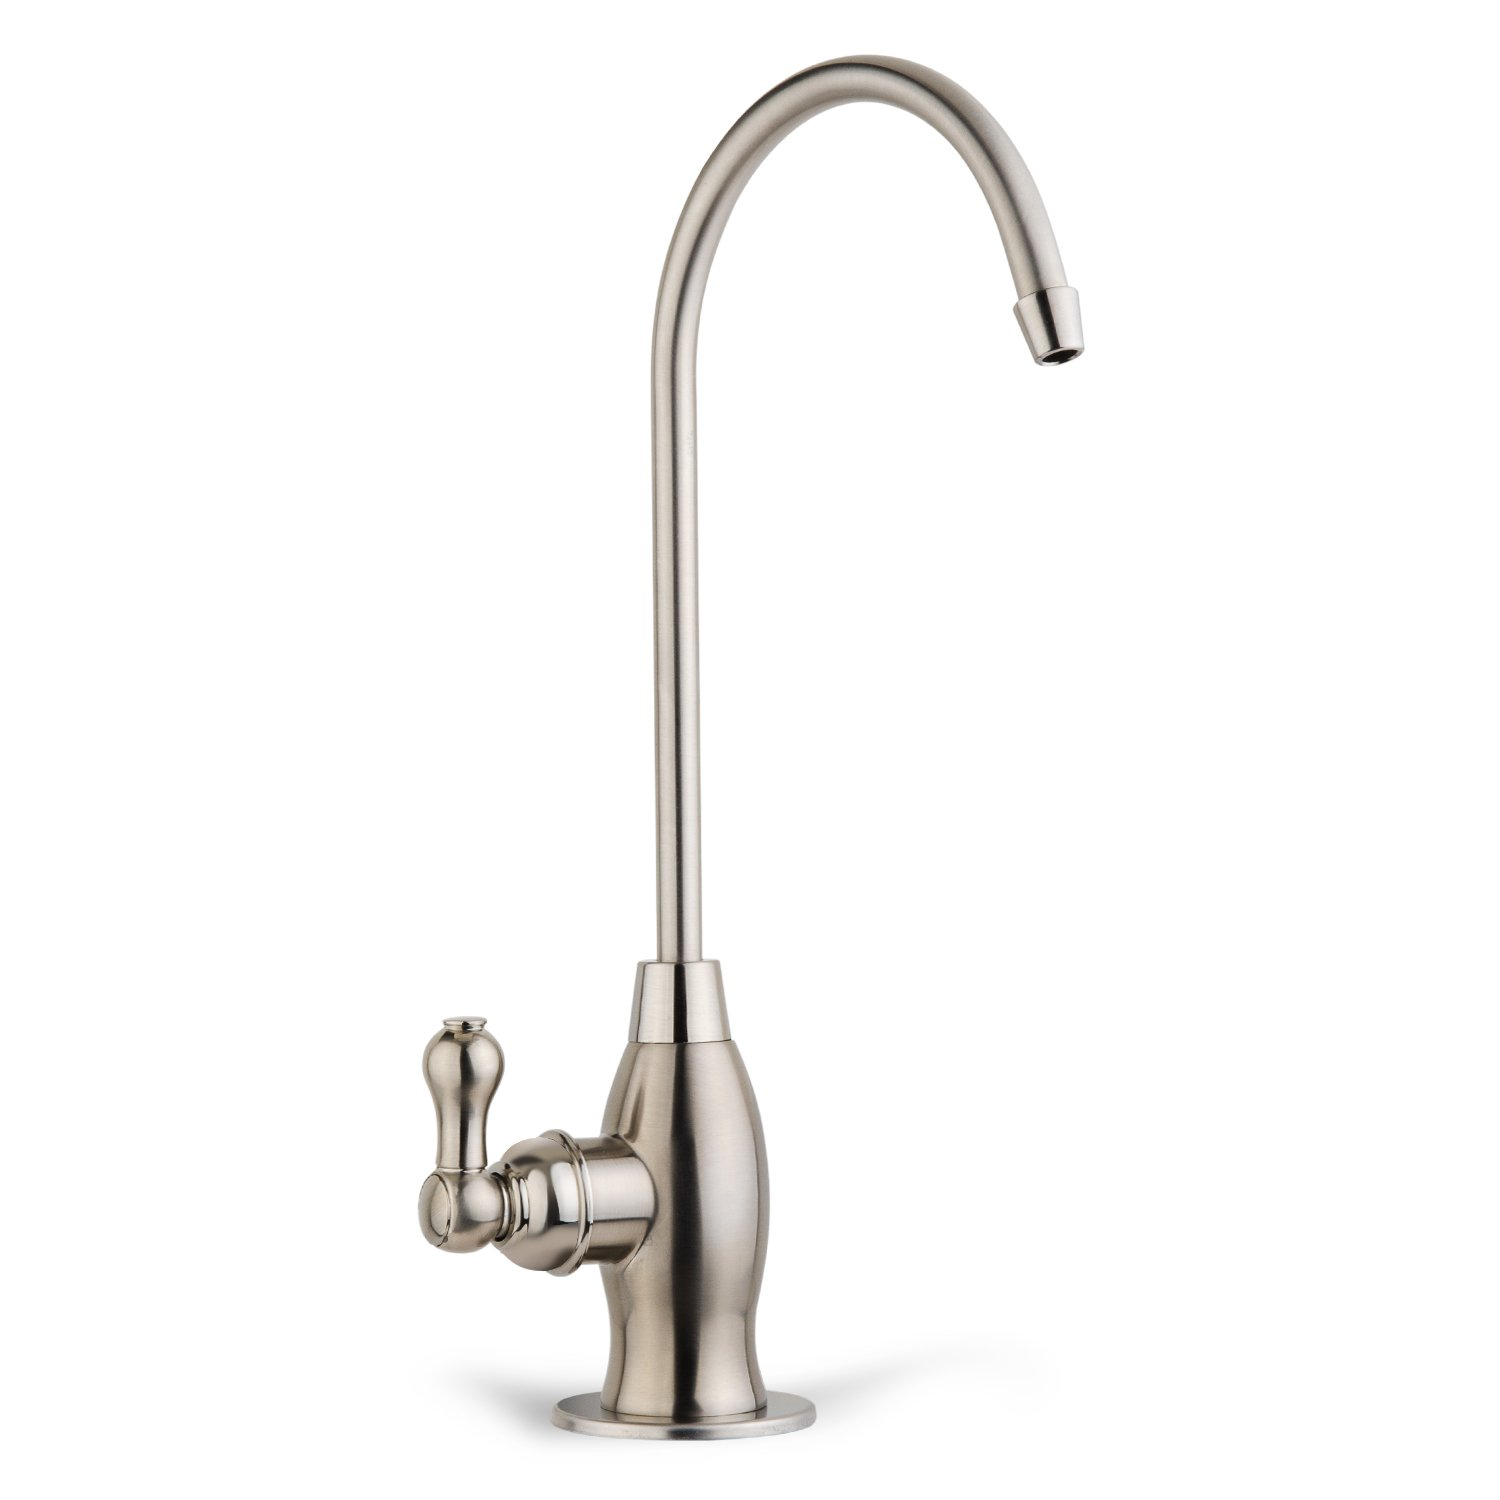 iSpring GK1-BN Kitchen Bar Sink Lead-Free Drinking Water Faucet, Reverse Osmosis Faucet, Contemporary Coke-Shaped Style, High Spout, Brushed Nickel Finish